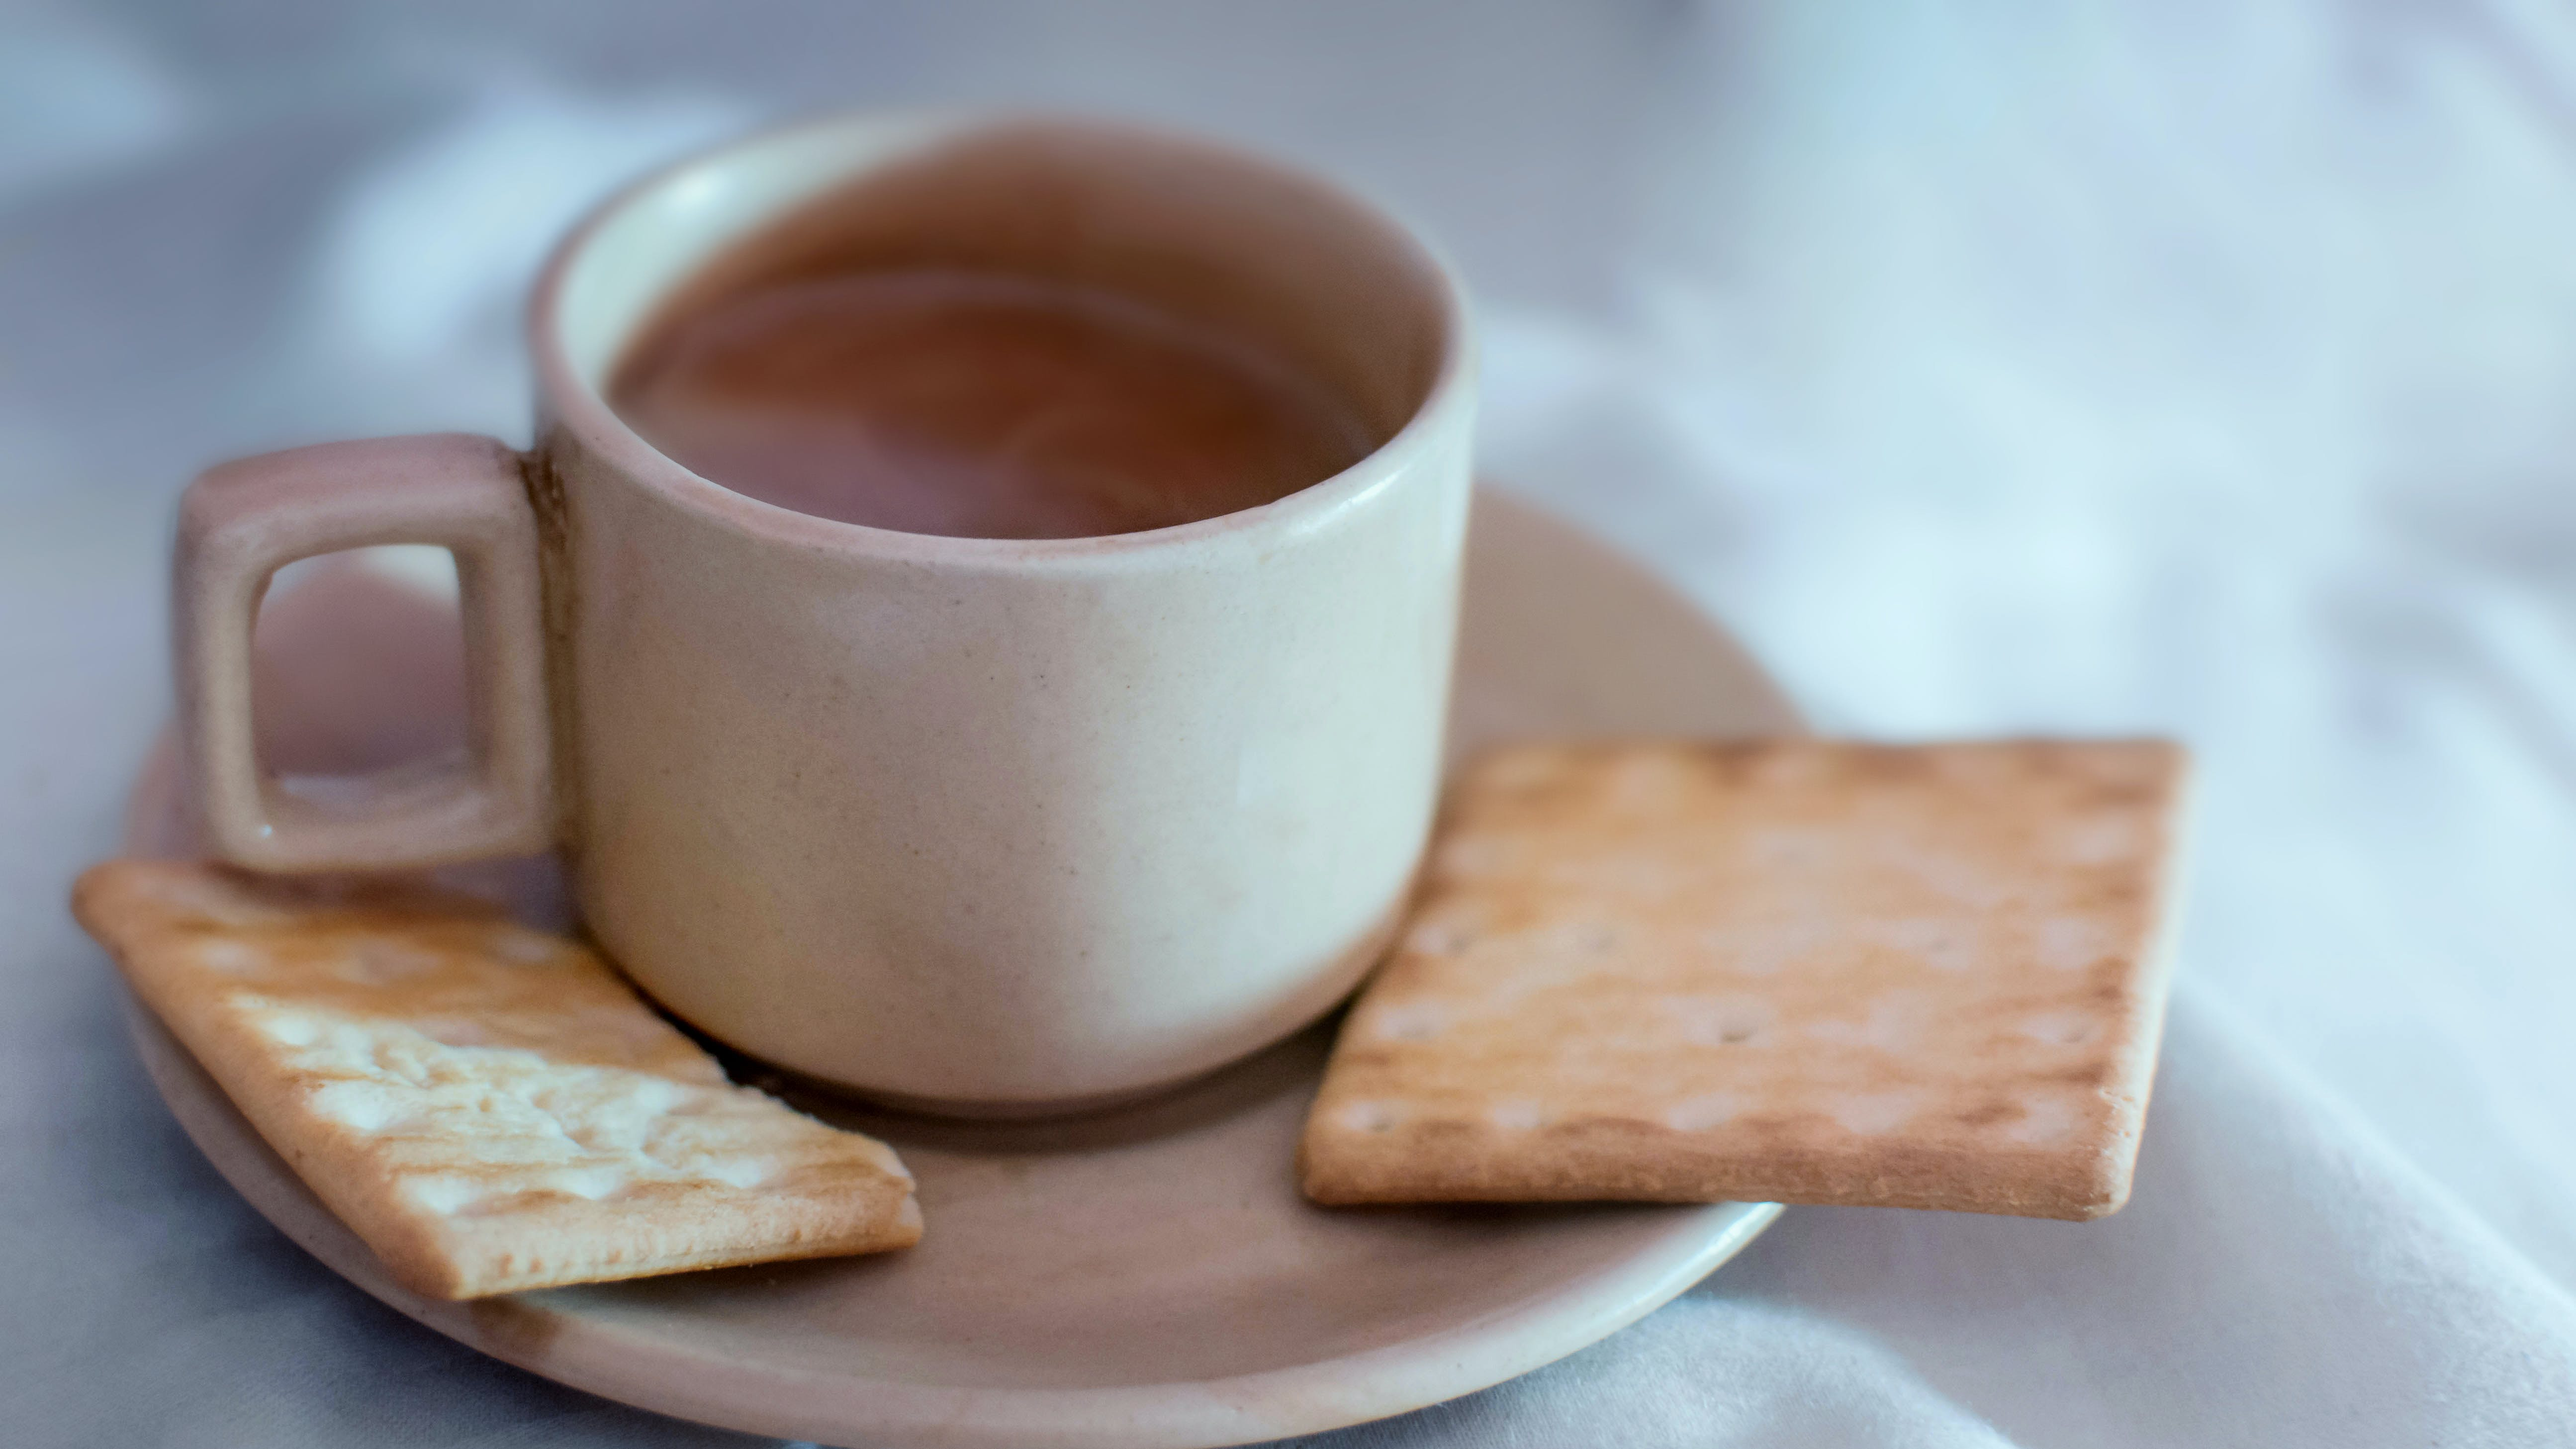 Free stock photo of biscuit, biscuits, coffee cup, cup